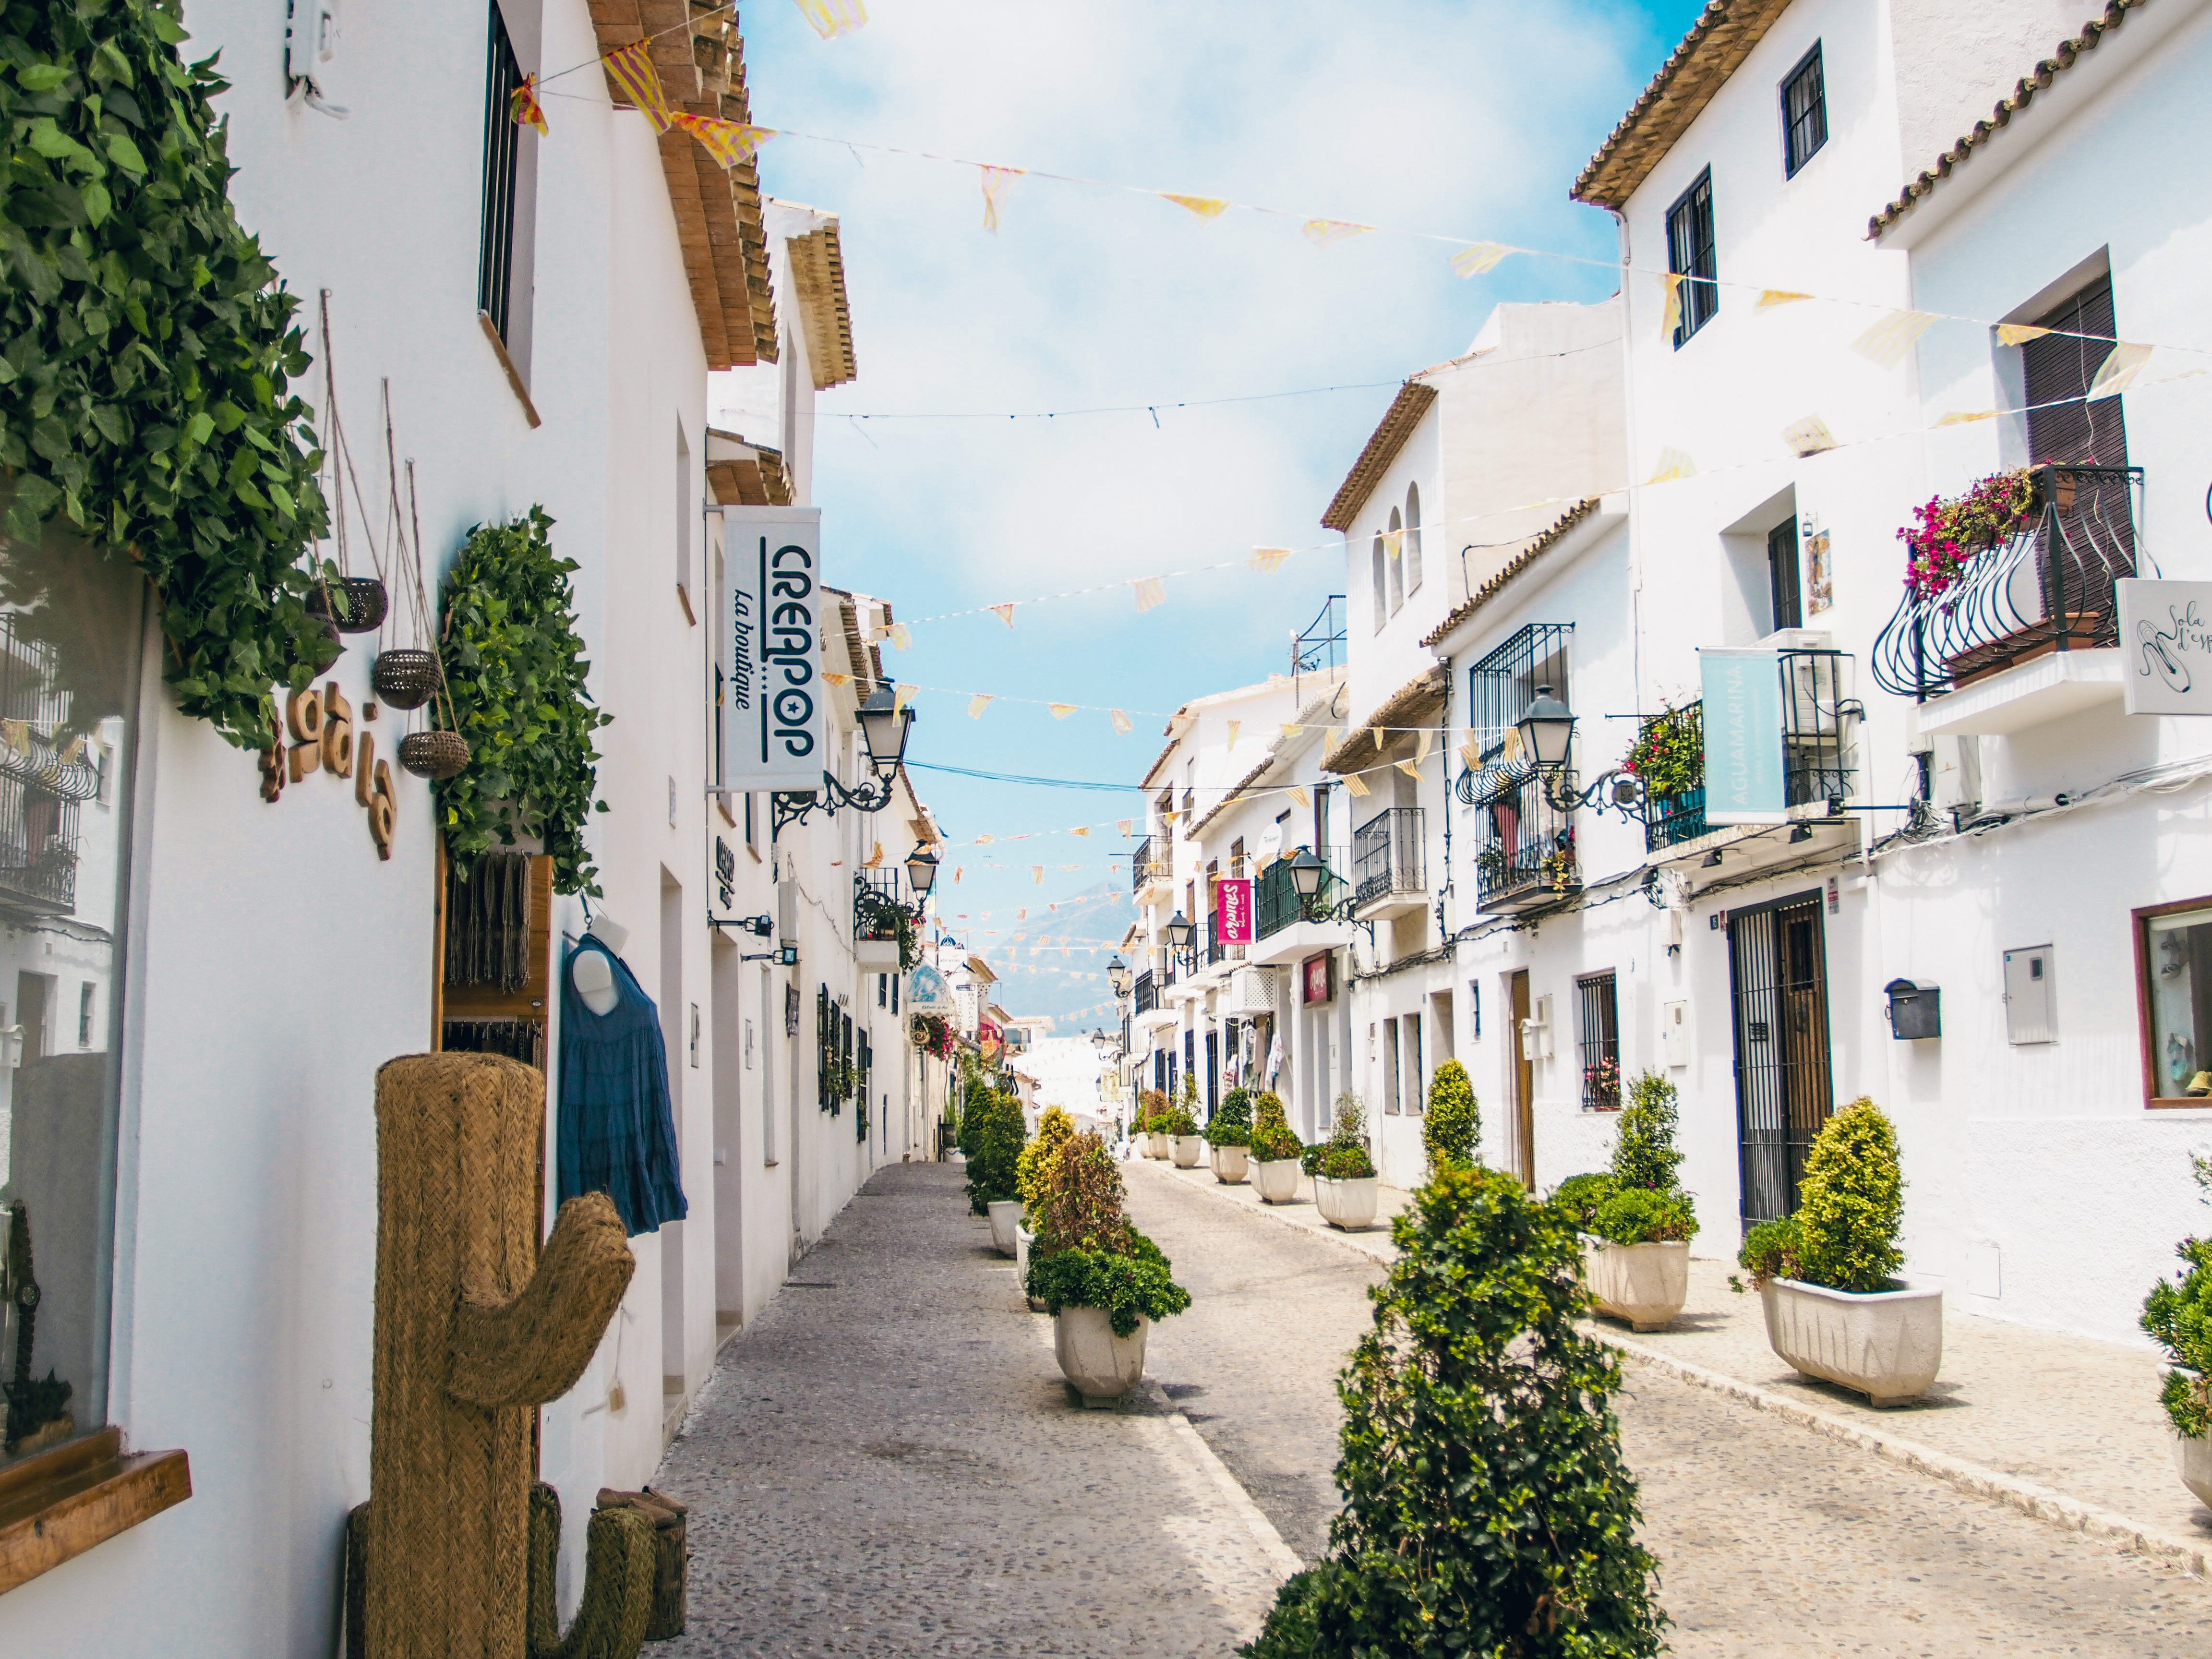 Altea: The Santorini of Spain